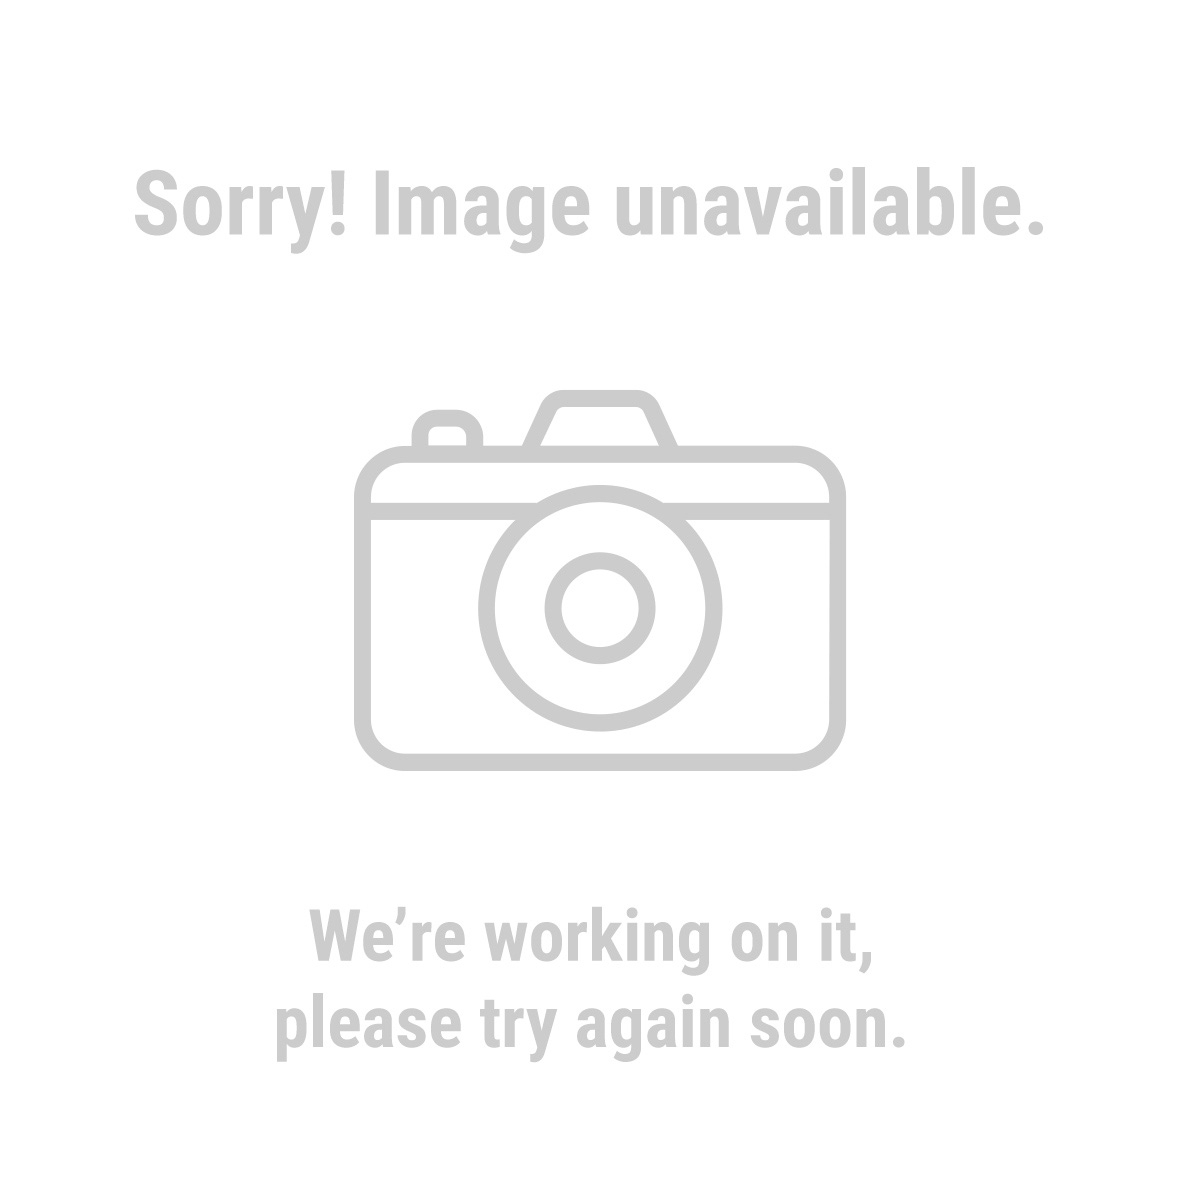 Central Hydraulics 94562 8 Ton Long Ram Air/Hydraulic Jack